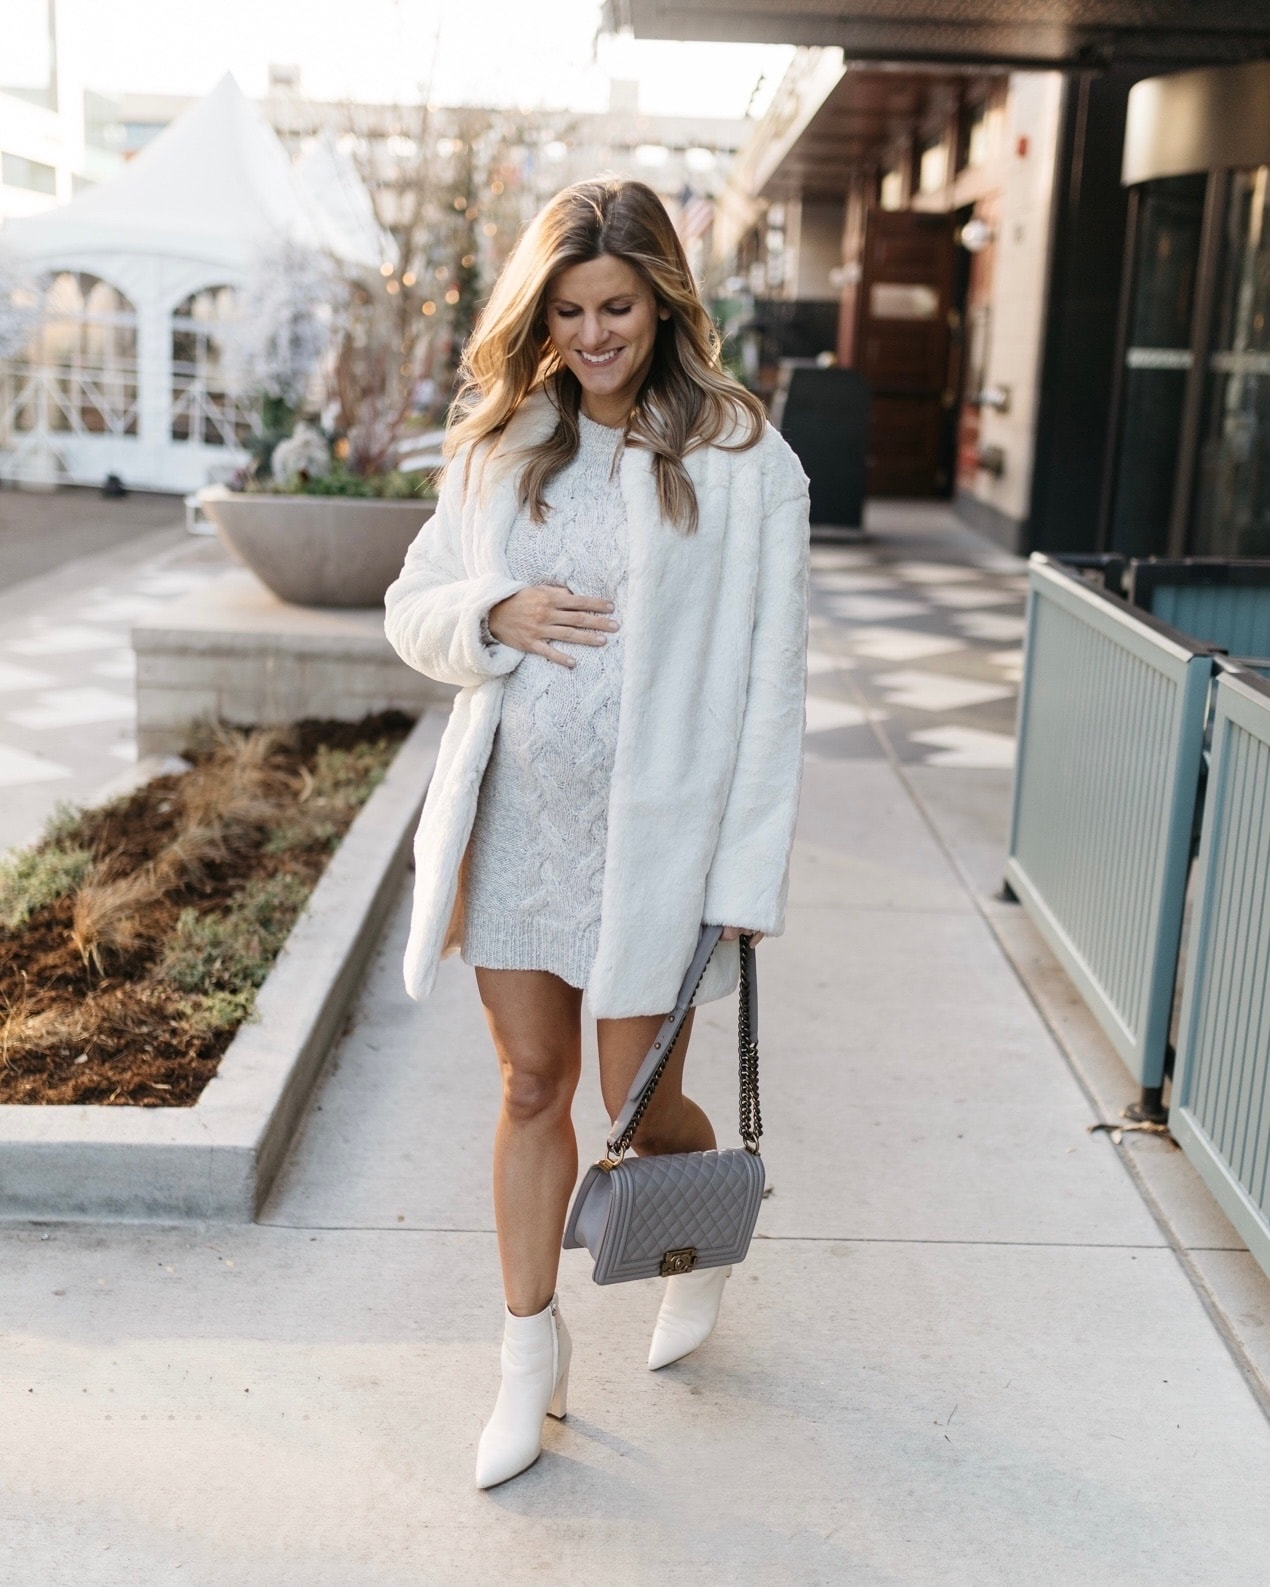 Brighton Butler in white fur jacket, grey sweater dress and white booties